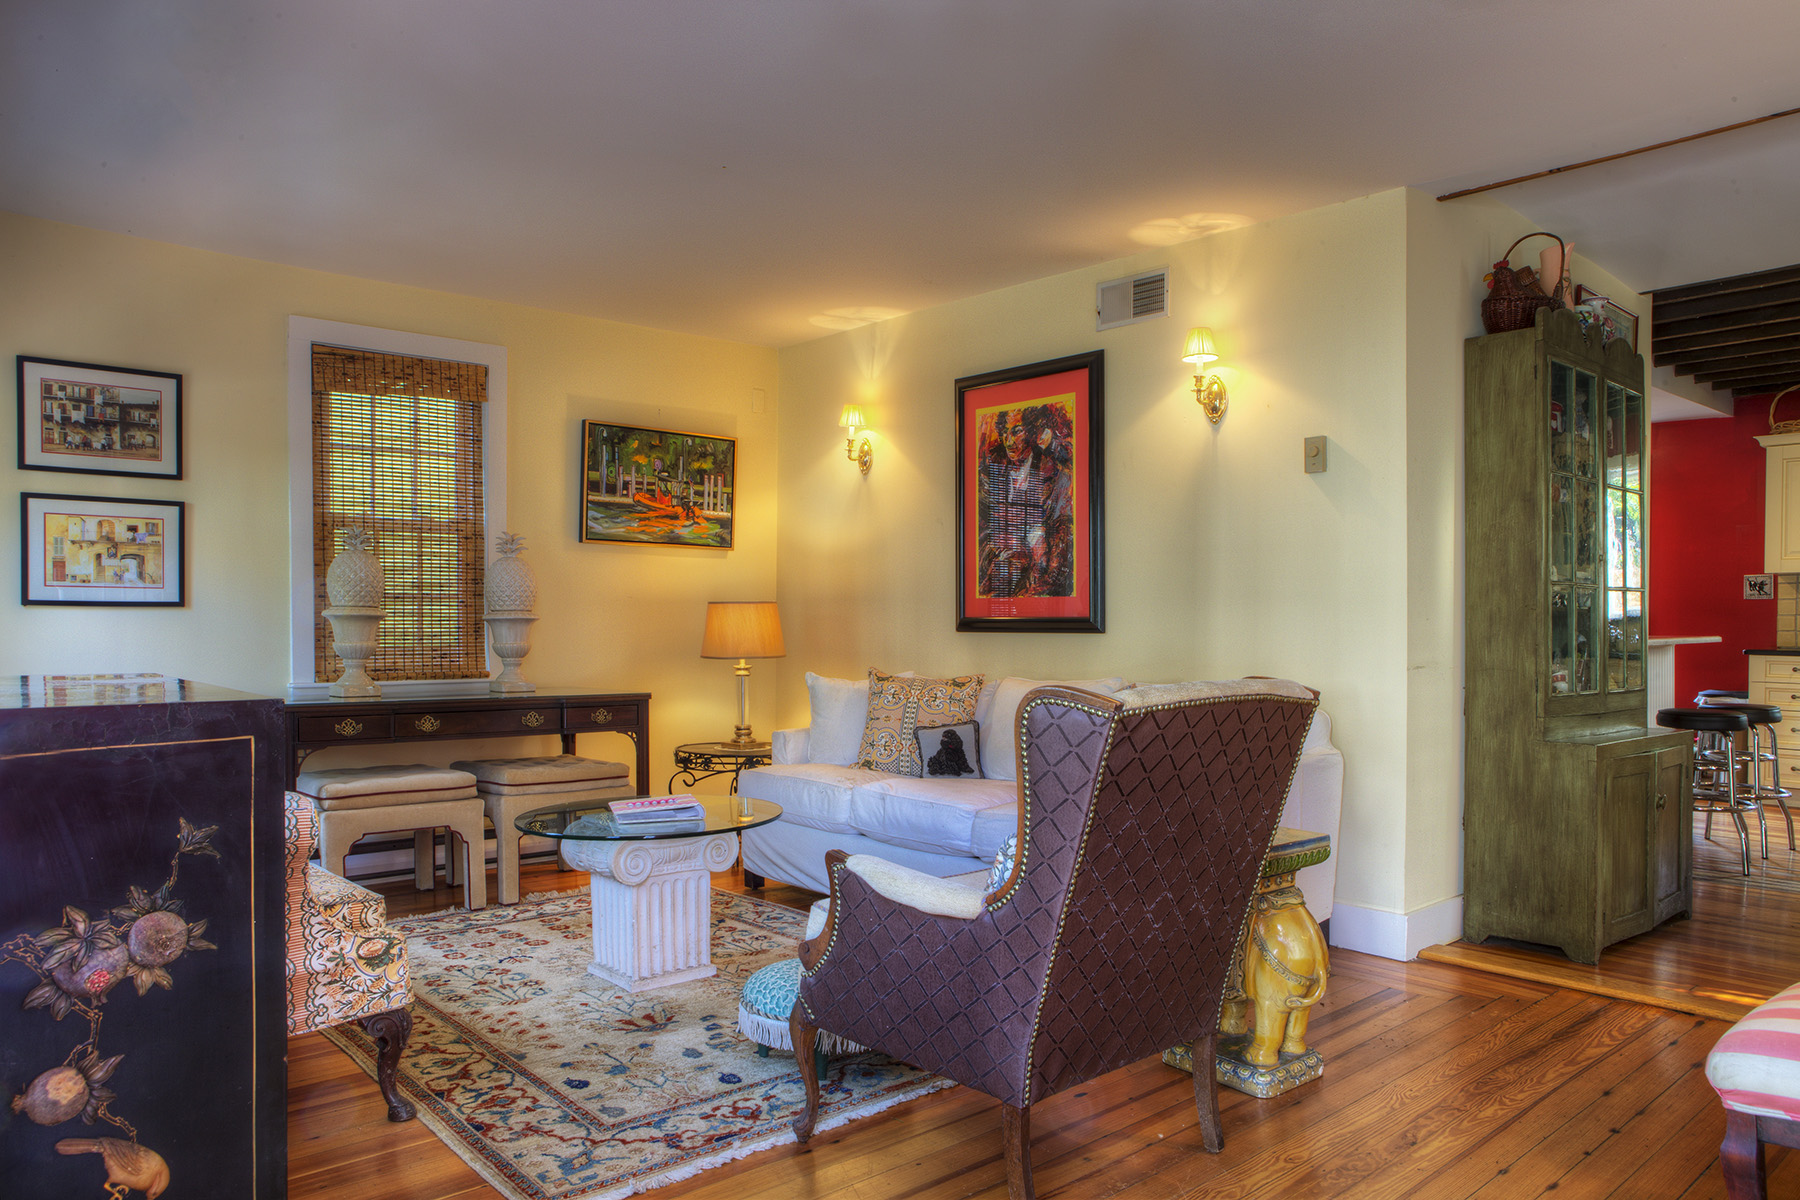 Additional photo for property listing at 'The D.S. Mayberry House' 36 Poplar Street Newport, Rhode Island 02871 United States